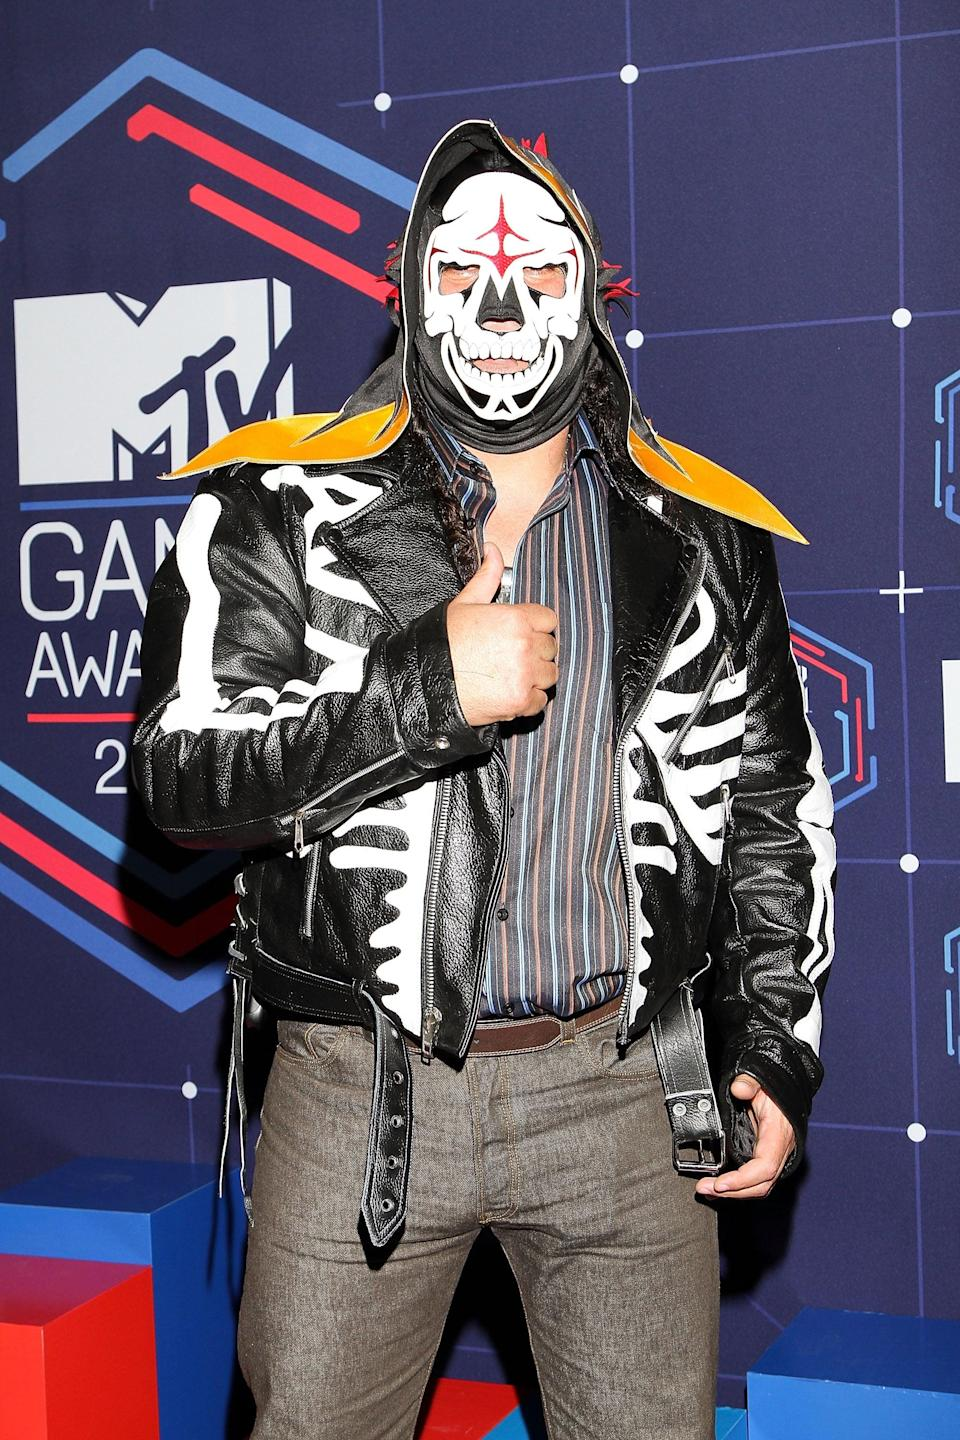 "<p>The famous wrestler, whose real name is Jesus Alfonso Huerta Escoboza, died in January of <a href=""https://www.latimes.com/sports/story/2020-01-11/la-parka-dies"" class=""link rapid-noclick-resp"" rel=""nofollow noopener"" target=""_blank"" data-ylk=""slk:injuries related to an in-ring accident"">injuries related to an in-ring accident</a>. Reports indicate he was 54 or 55.</p>"